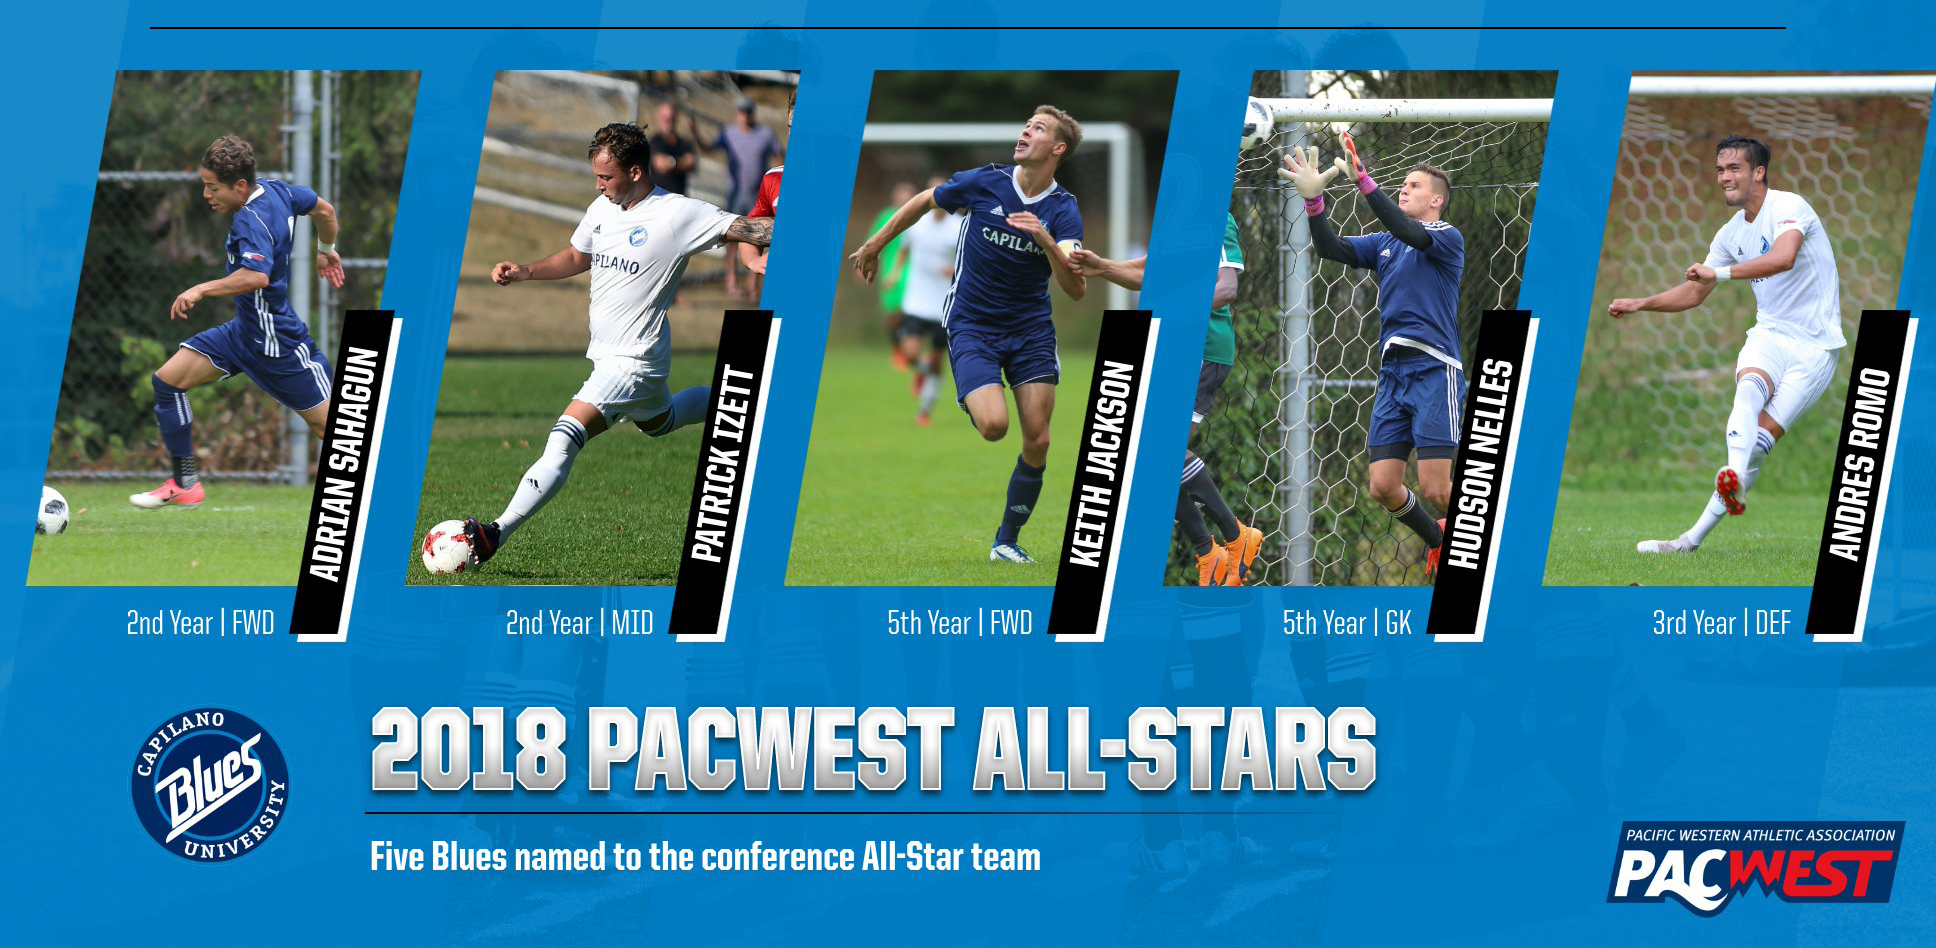 Five Blues named all-stars; Jackson top player